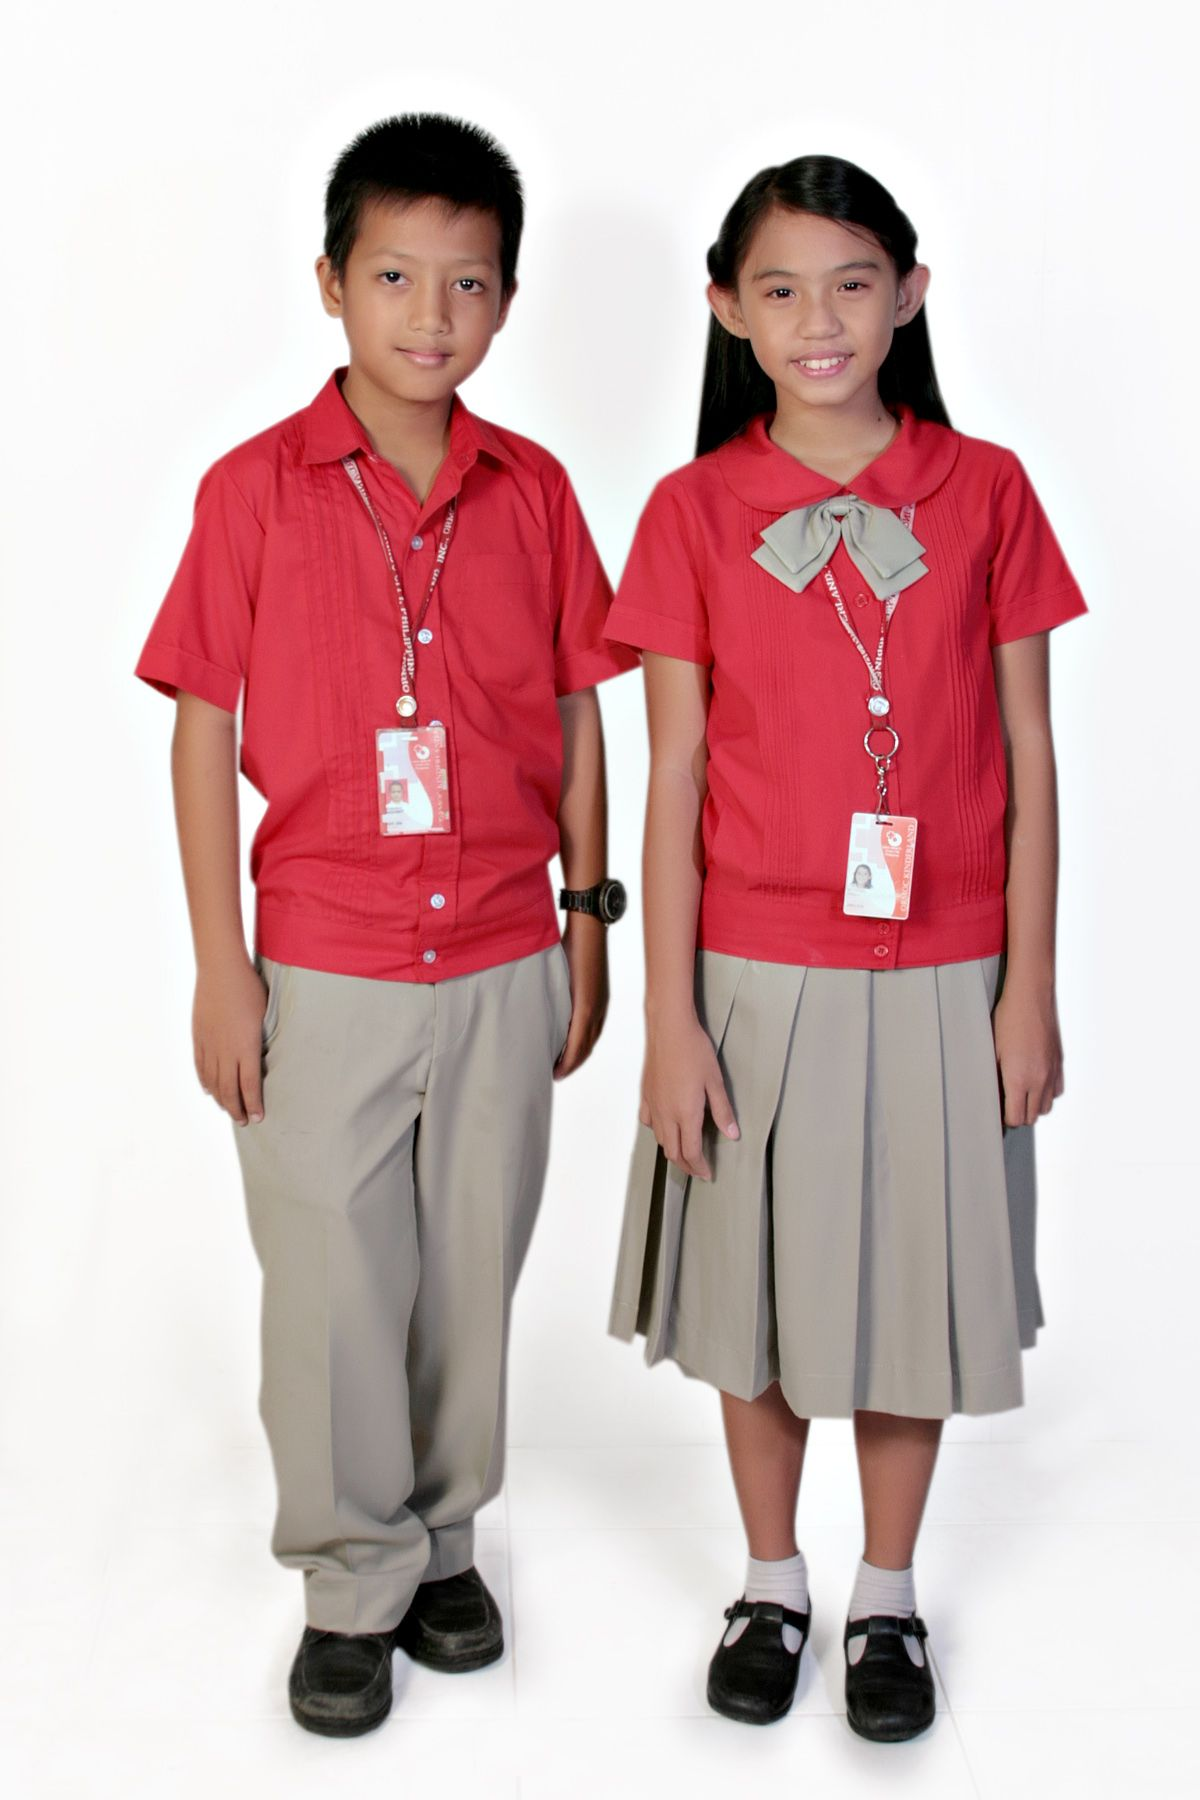 school uniform debate pro School uniforms -debate- uploaded by cristina mihaela suverjanu pro 3 - school uniforms create a level playing field among students, reducing peer pressure and bullying -when all students are dressed alike, competition between students over clothing choices.